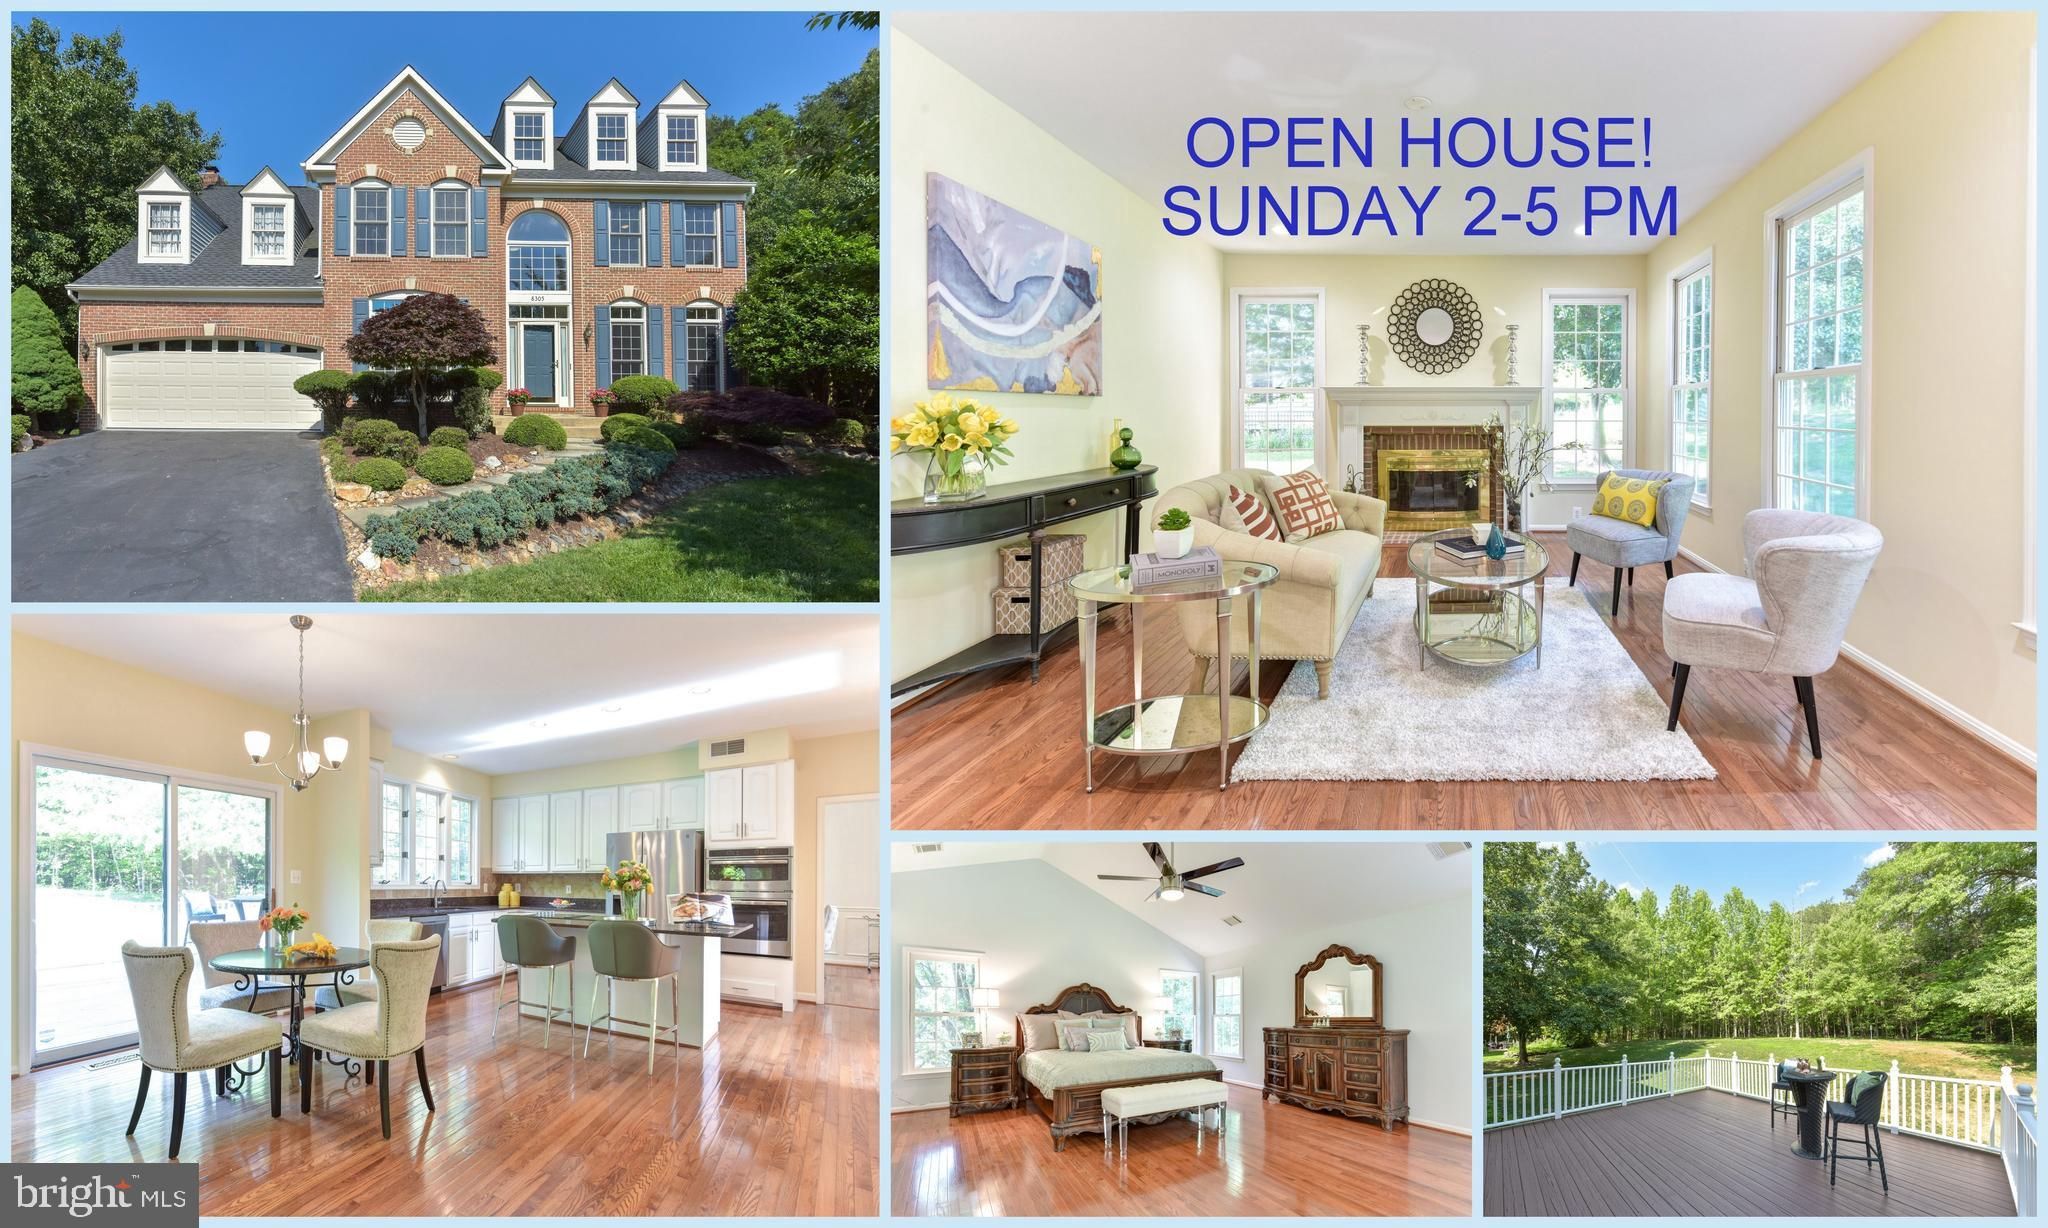 OPEN SUN 2-5! Beautiful 5 BR, 3.5 BA brick-front colonial with 2 car garage. Large 0.38 acre lot on a quiet cul-de-sac backing to trees. Spacious floor plan with gleaming hardwood flooring, large windows and new recessed lighting. Gourmet kitchen with granite countertops, center island, tile backsplash and new stainless steel appliances. Large private deck with tree views. Master suite with cathedral ceiling, 2 walk-in closets and hardwood flooring. Luxurious, newly renovated master bath with granite top vanities, soaking tub and separate shower. Walk-up basement with rec room, storage room, bonus room, optional 5th BR and renovated full bath. Enjoy community amenities - pool, tennis courts, tails and community center. Easy access to Fairfax County Pkwy, VRE, Rt. 123 and I-95.